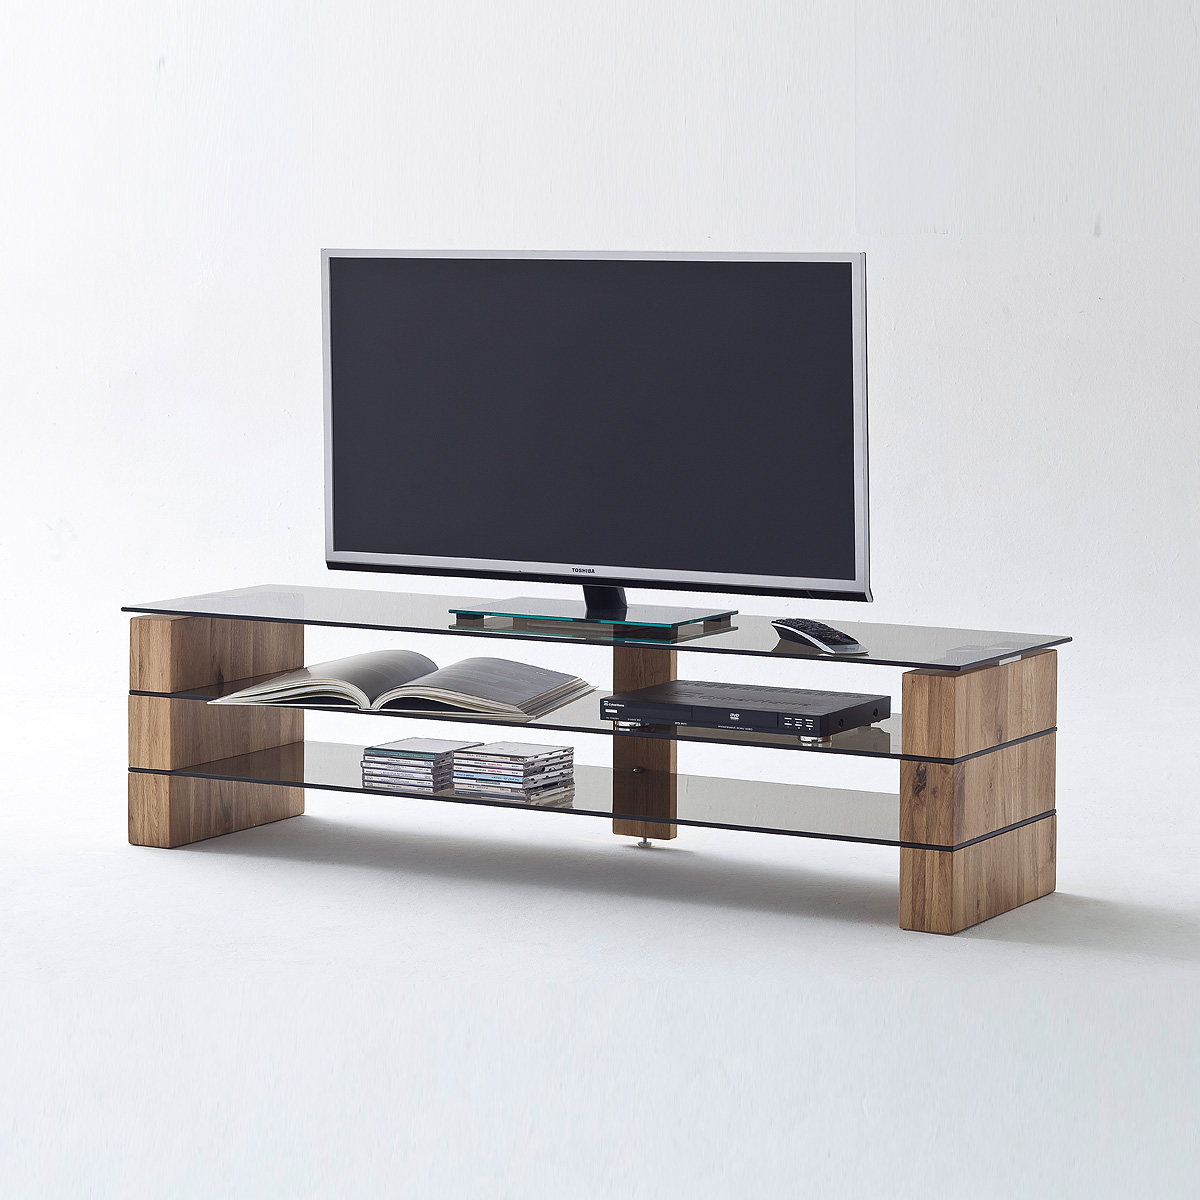 tv rack kari tv board lowboard in eiche massiv glas grau mit gr enauswahl ebay. Black Bedroom Furniture Sets. Home Design Ideas